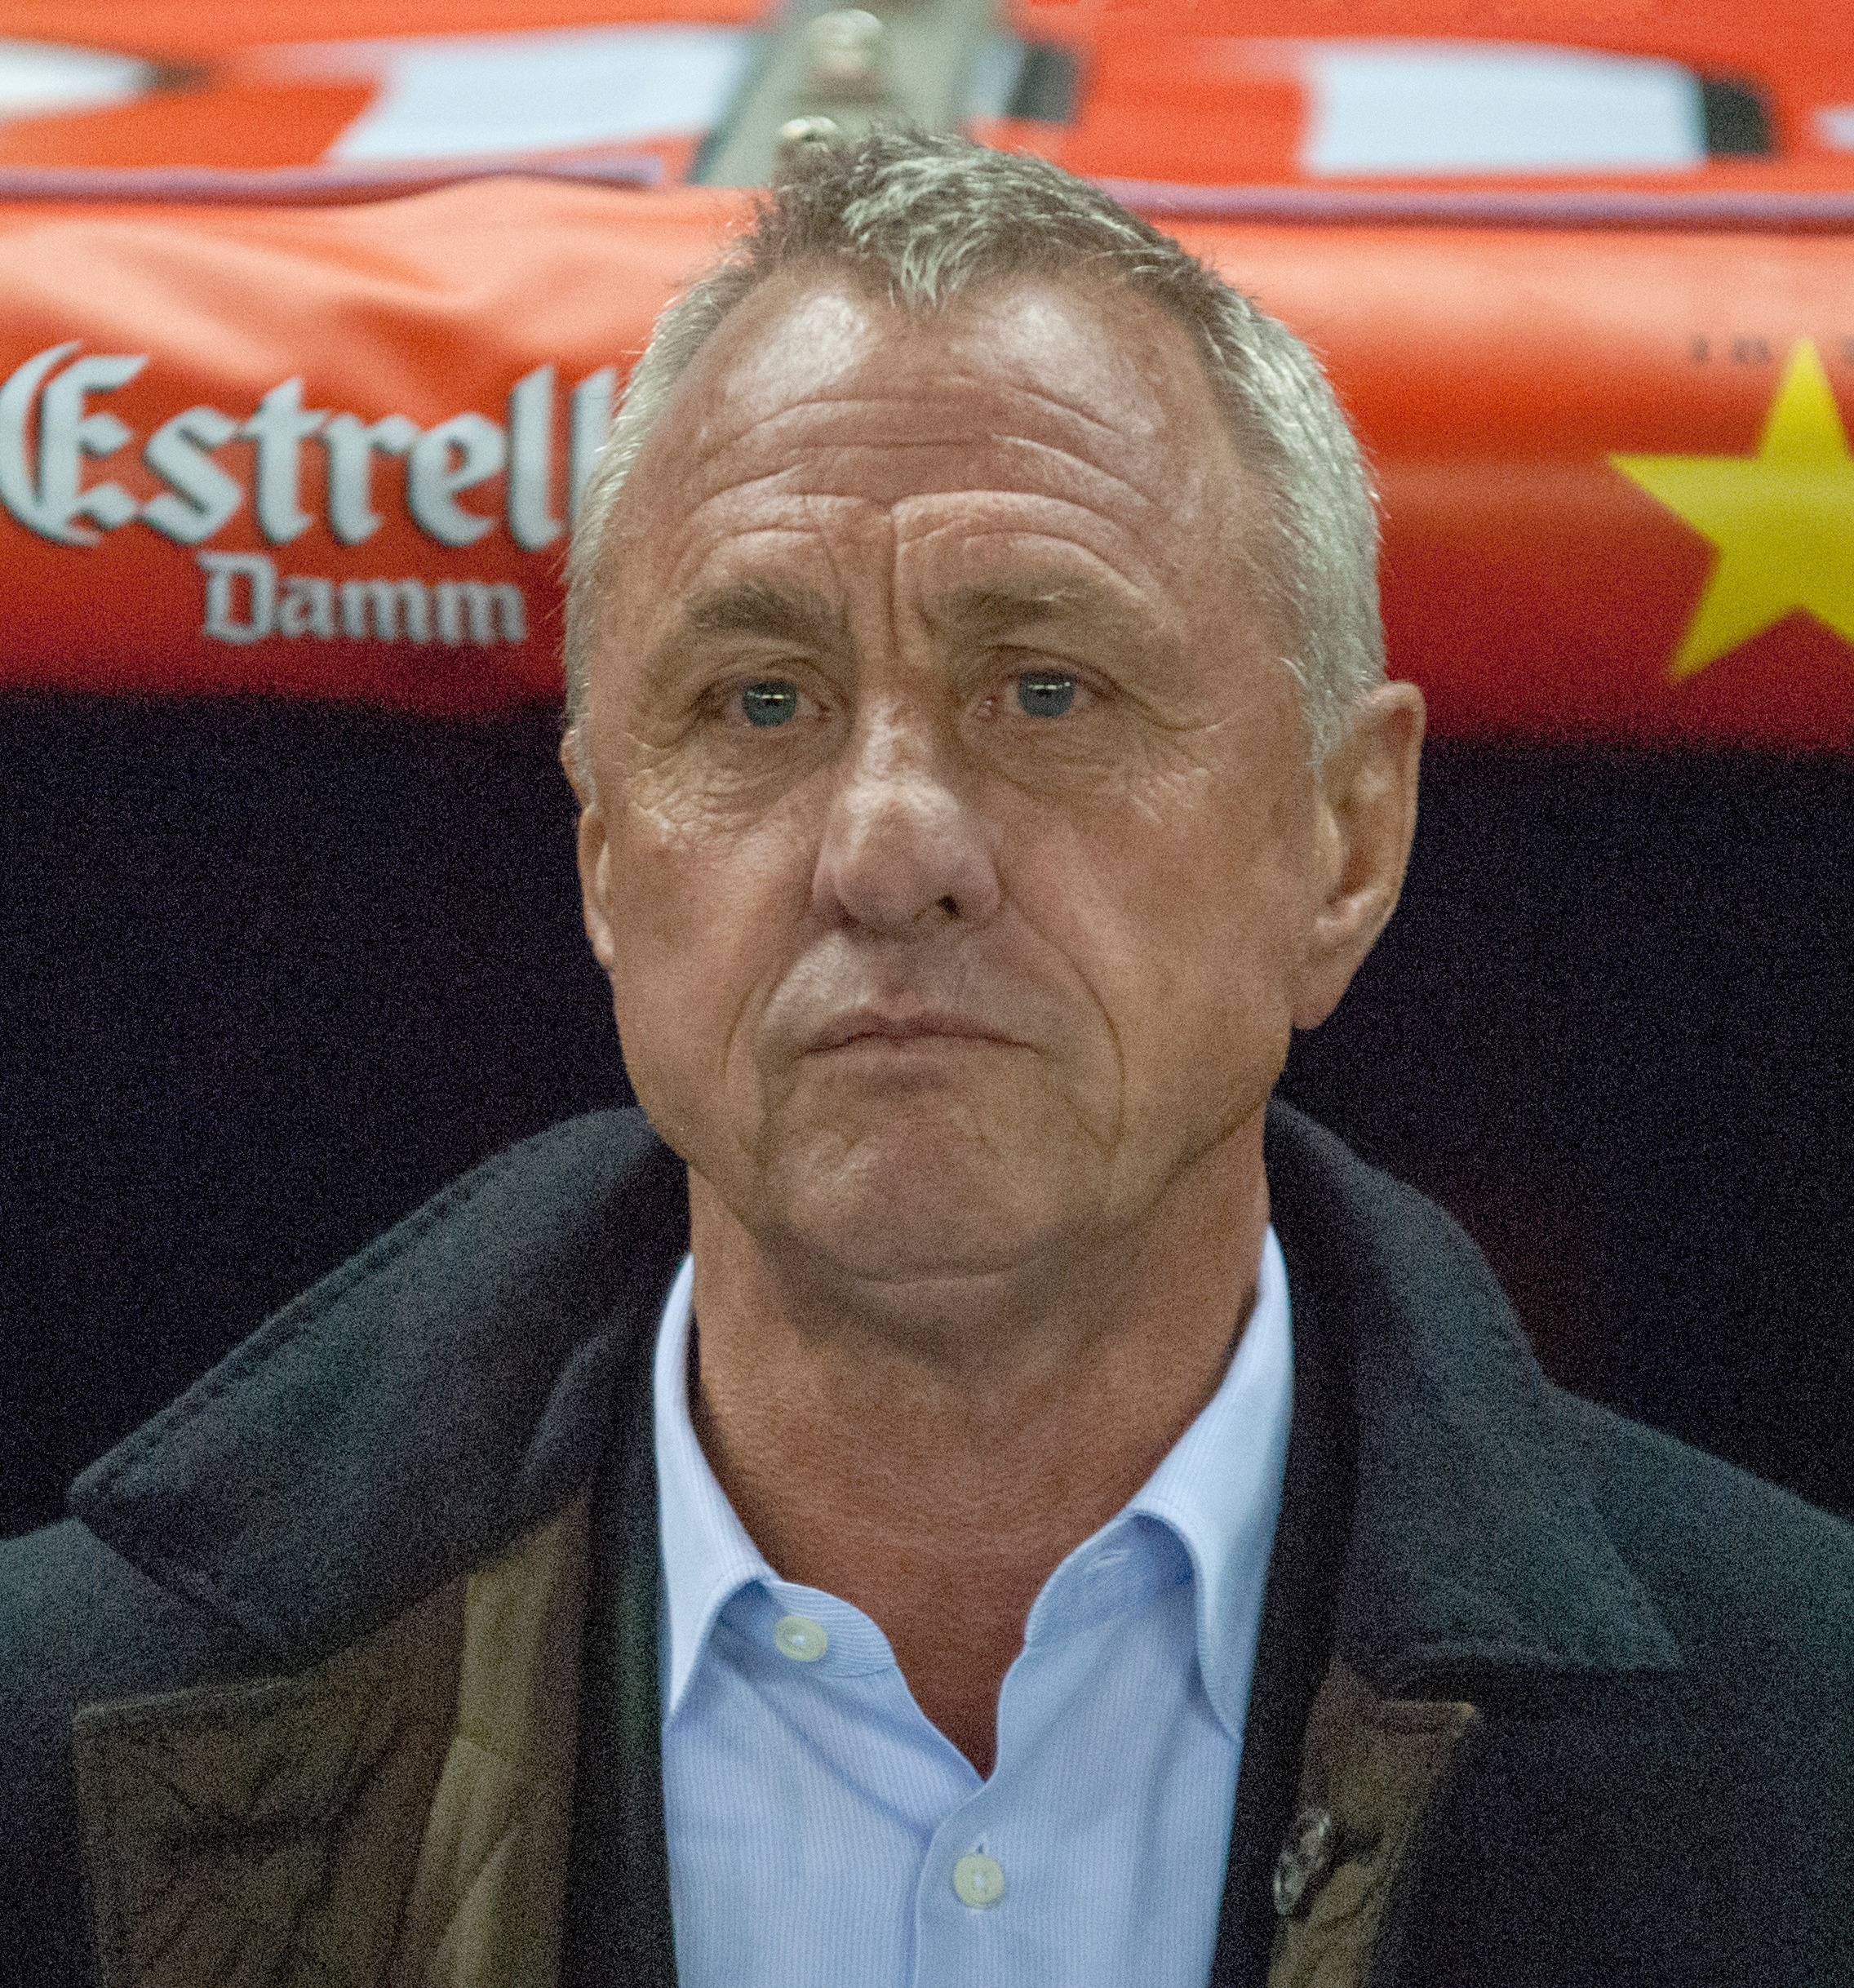 The 71-year old son of father Hermanus Cornelis Cruijff and mother(?), 180 cm tall Johan Cruijff in 2018 photo